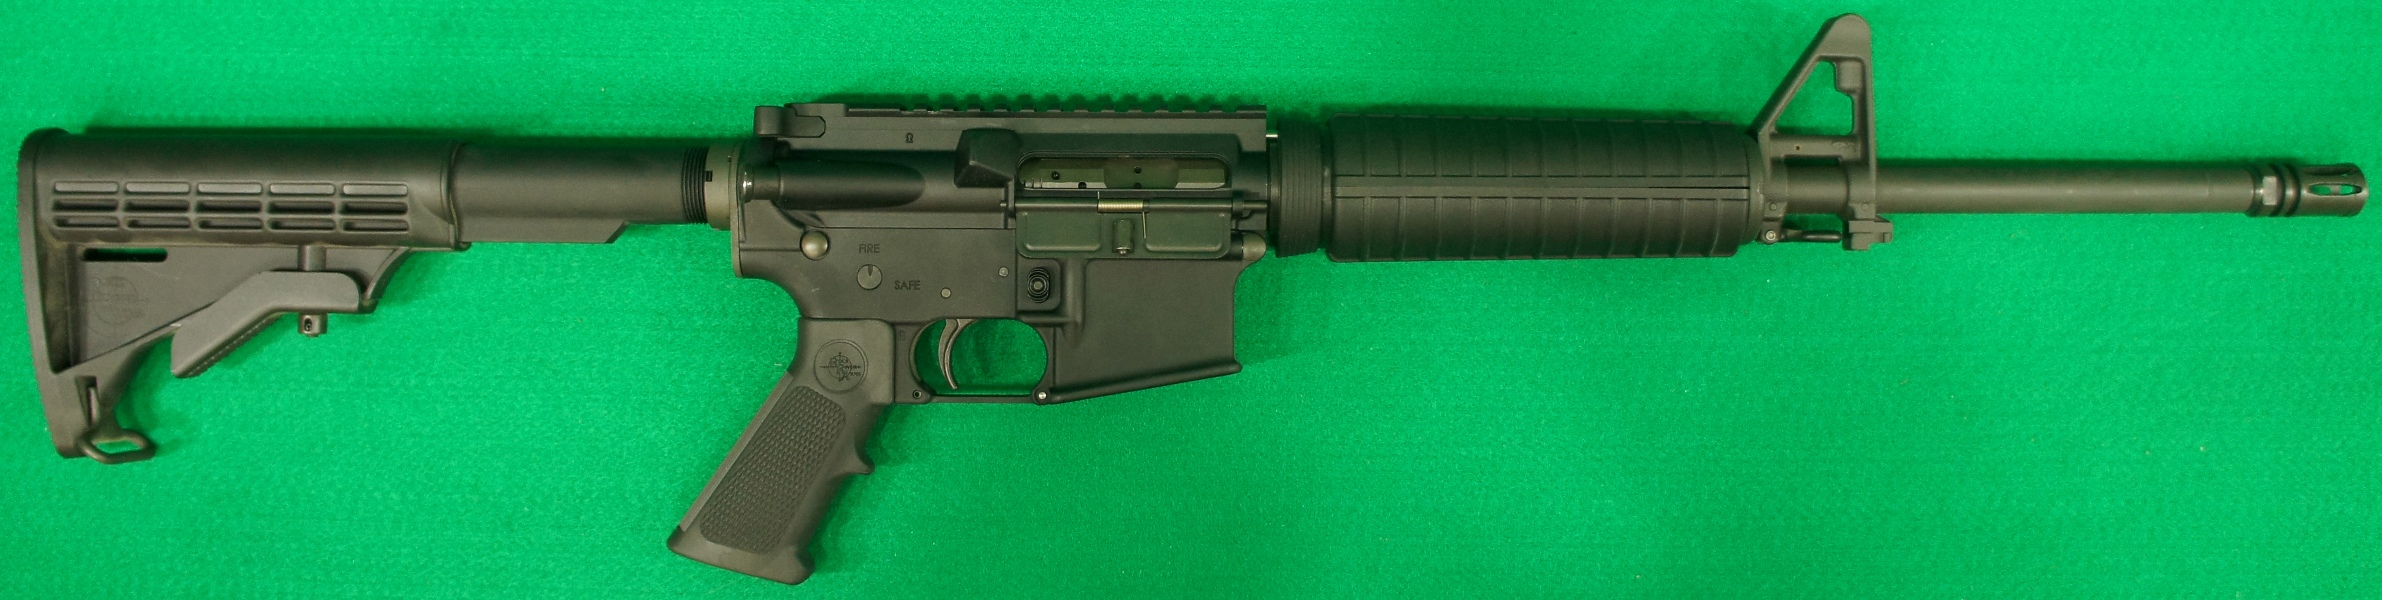 Rock River Arms AR AR15 Carbine A4 5.56mm 16In